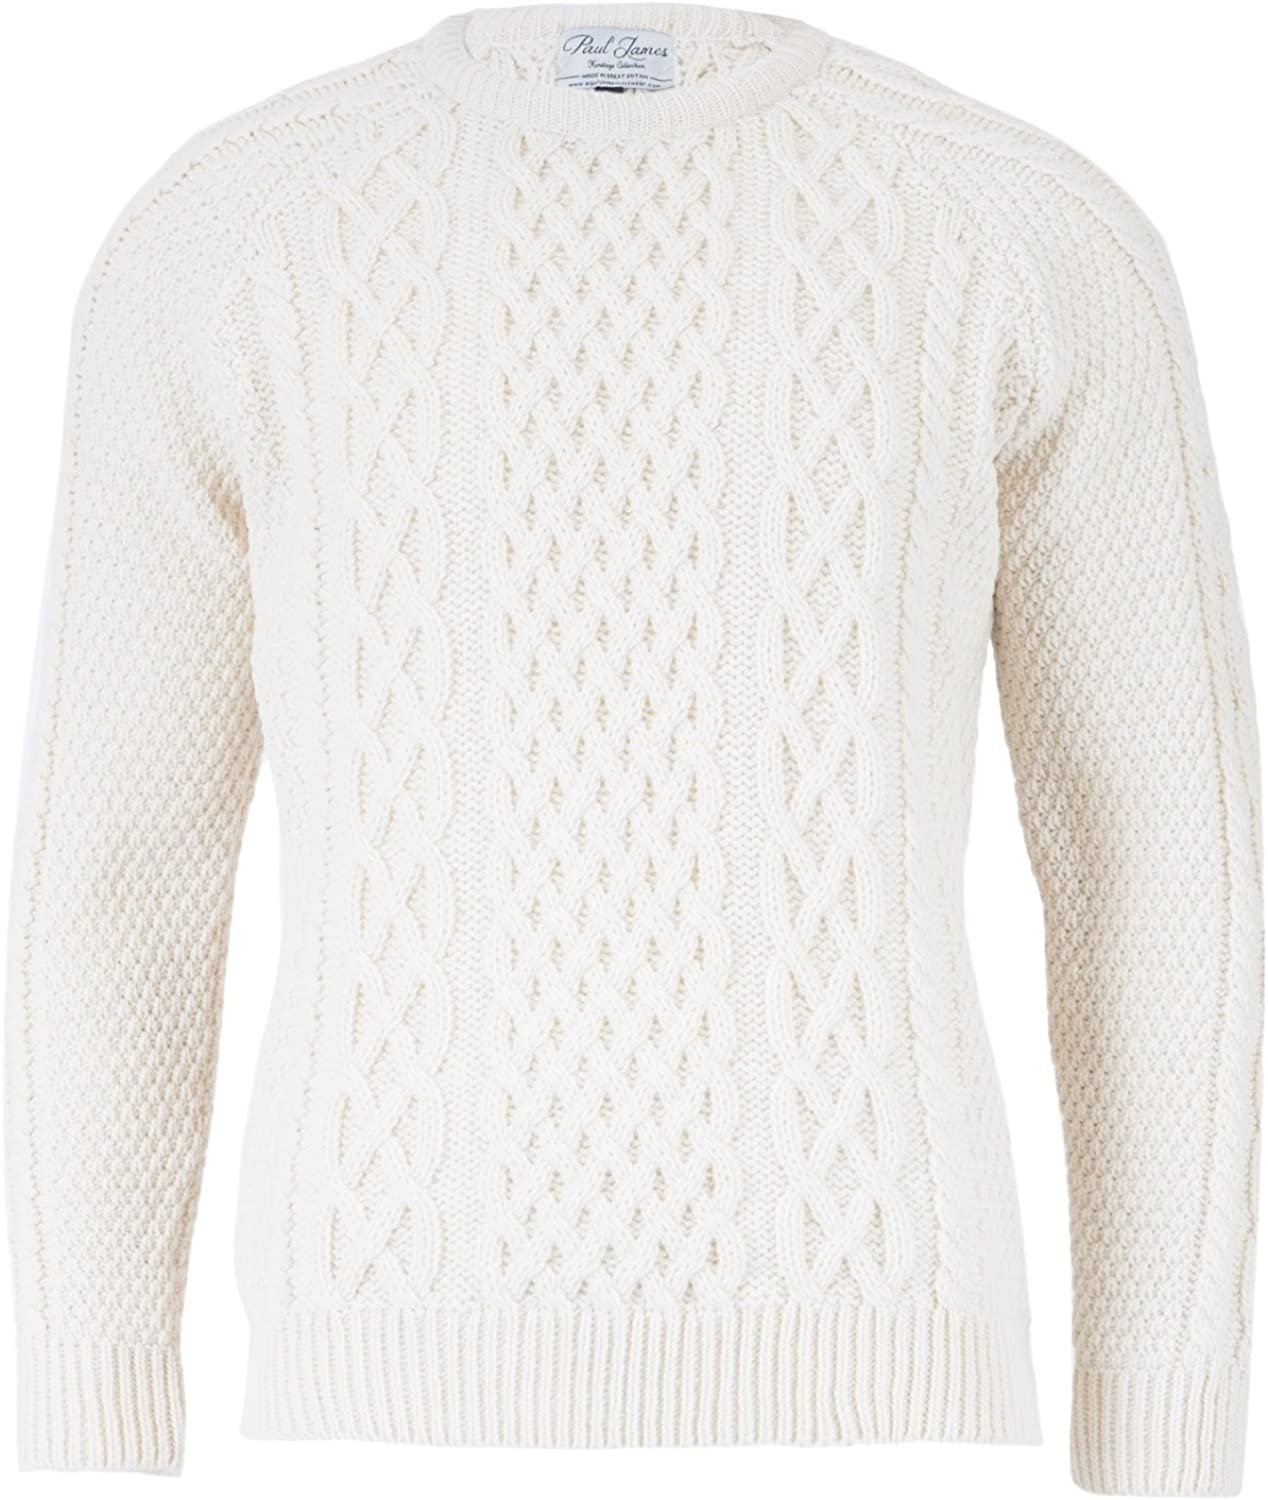 Paul James - Anderson Mens Aran Direct store Made Merino G in Sweater Wool Mail order cheap